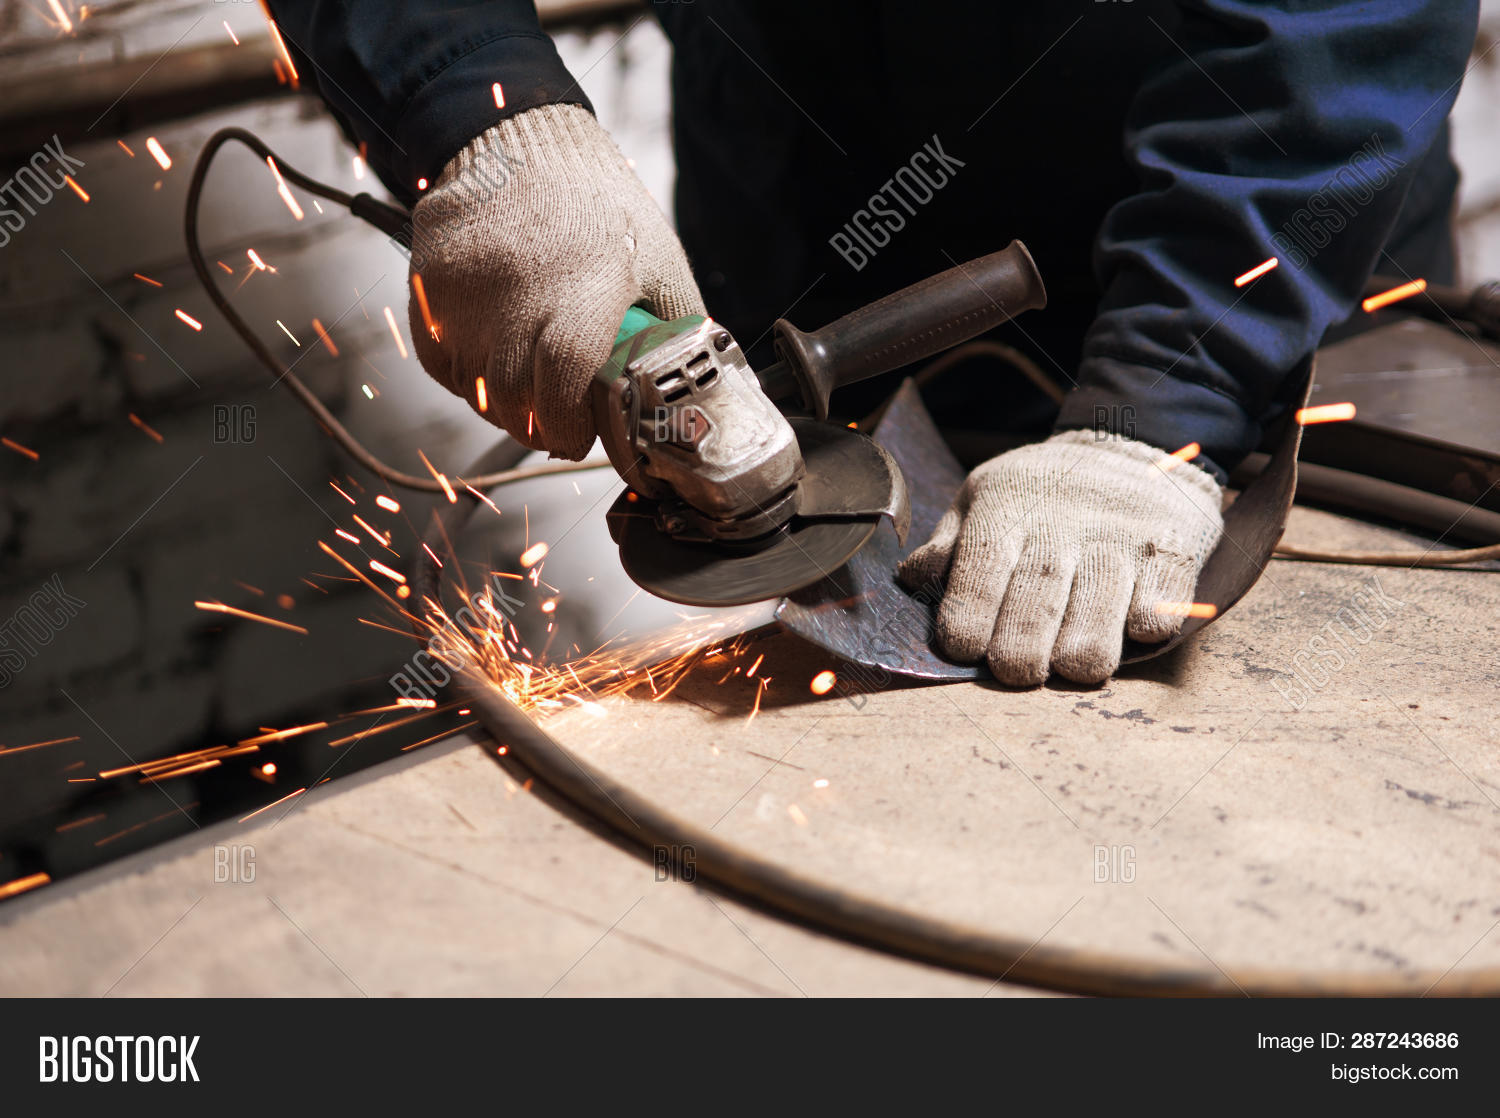 blacksmith,bracing,cap,craft,craftsman,craftsmanship,cutting,diy,electric,engineer,equipment,expertise,factory,farrier,gloves,grey,grindering,hand,handmade,handwork,hold,hotbed,industrial,industry,iron,job,make,making,man,manufacturing,mechanic,metal,occupation,ornament,parts,product,professional,skill,solder,sparks,stand,tools,vertical,white,worker,working,workshop